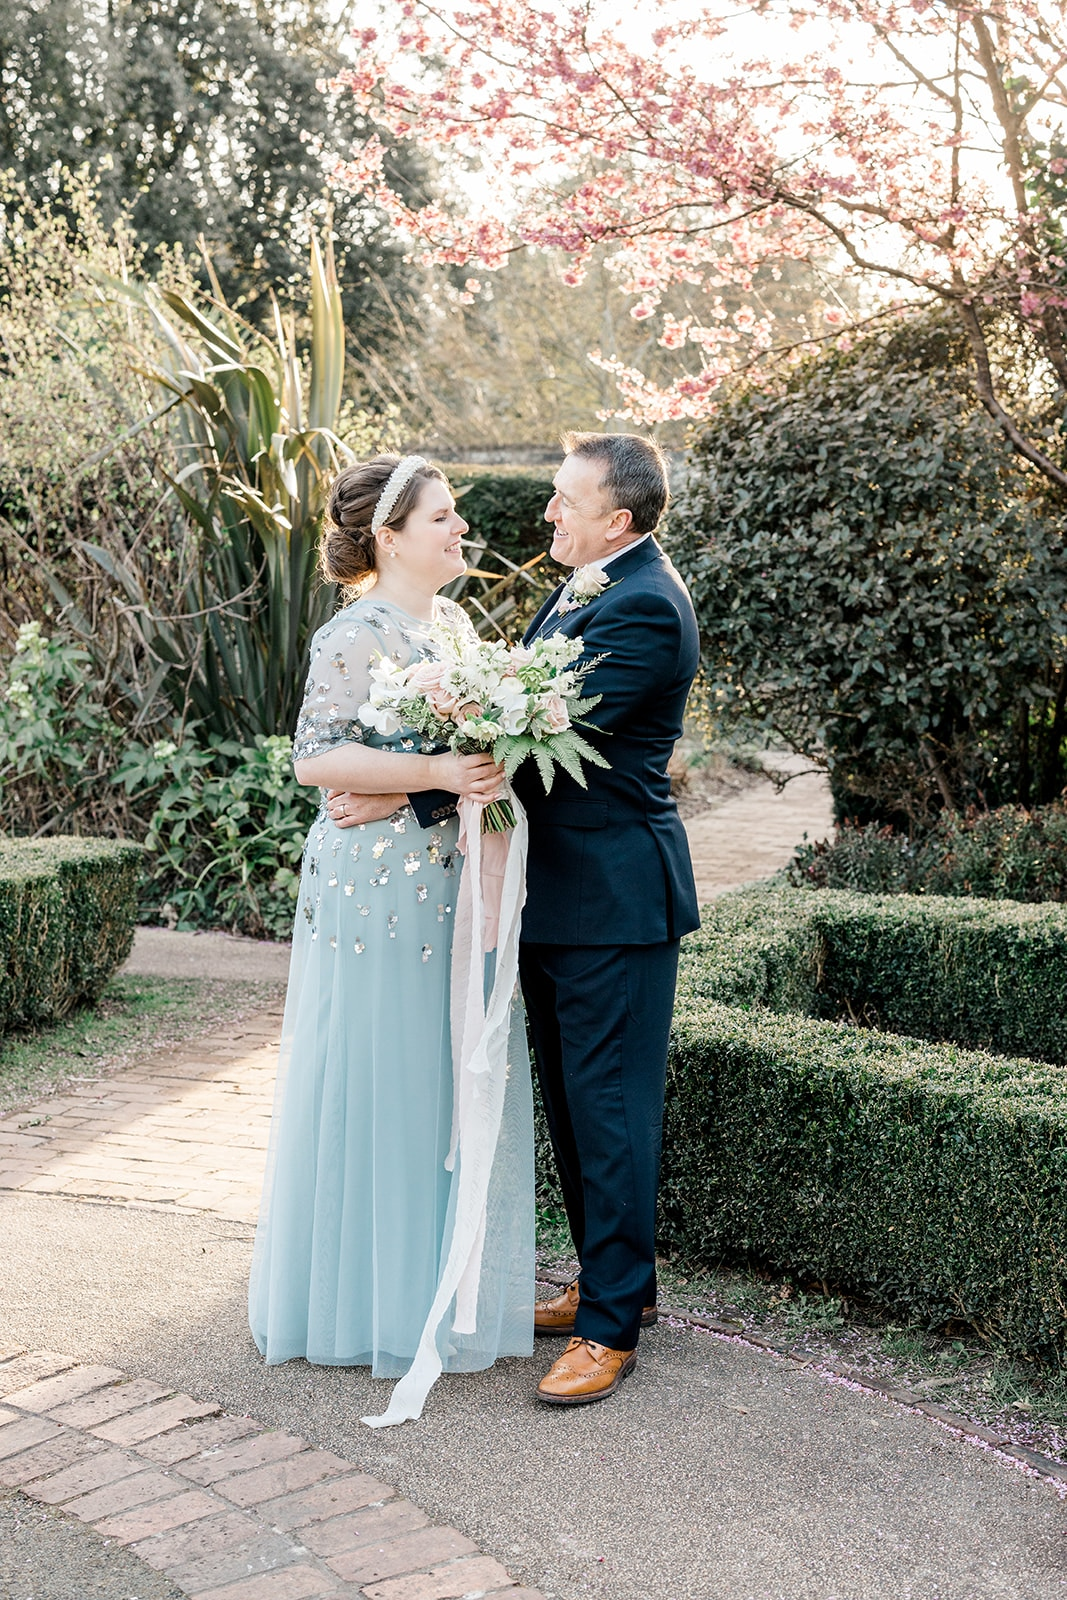 Wedding Photographer in Lewes at Southover Grange Register Office